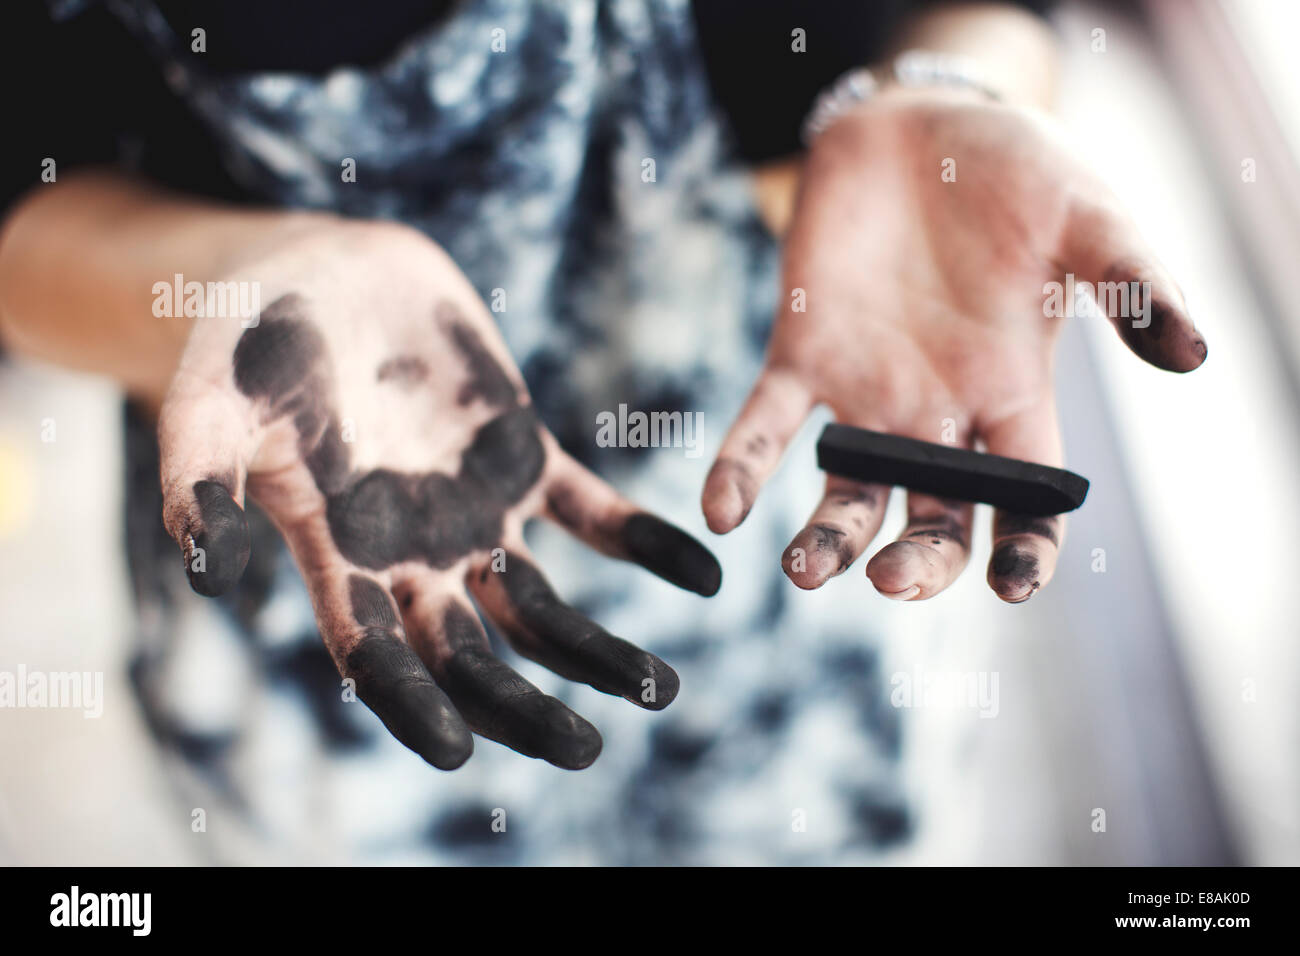 Woman's charcoal-stained hands - Stock Image